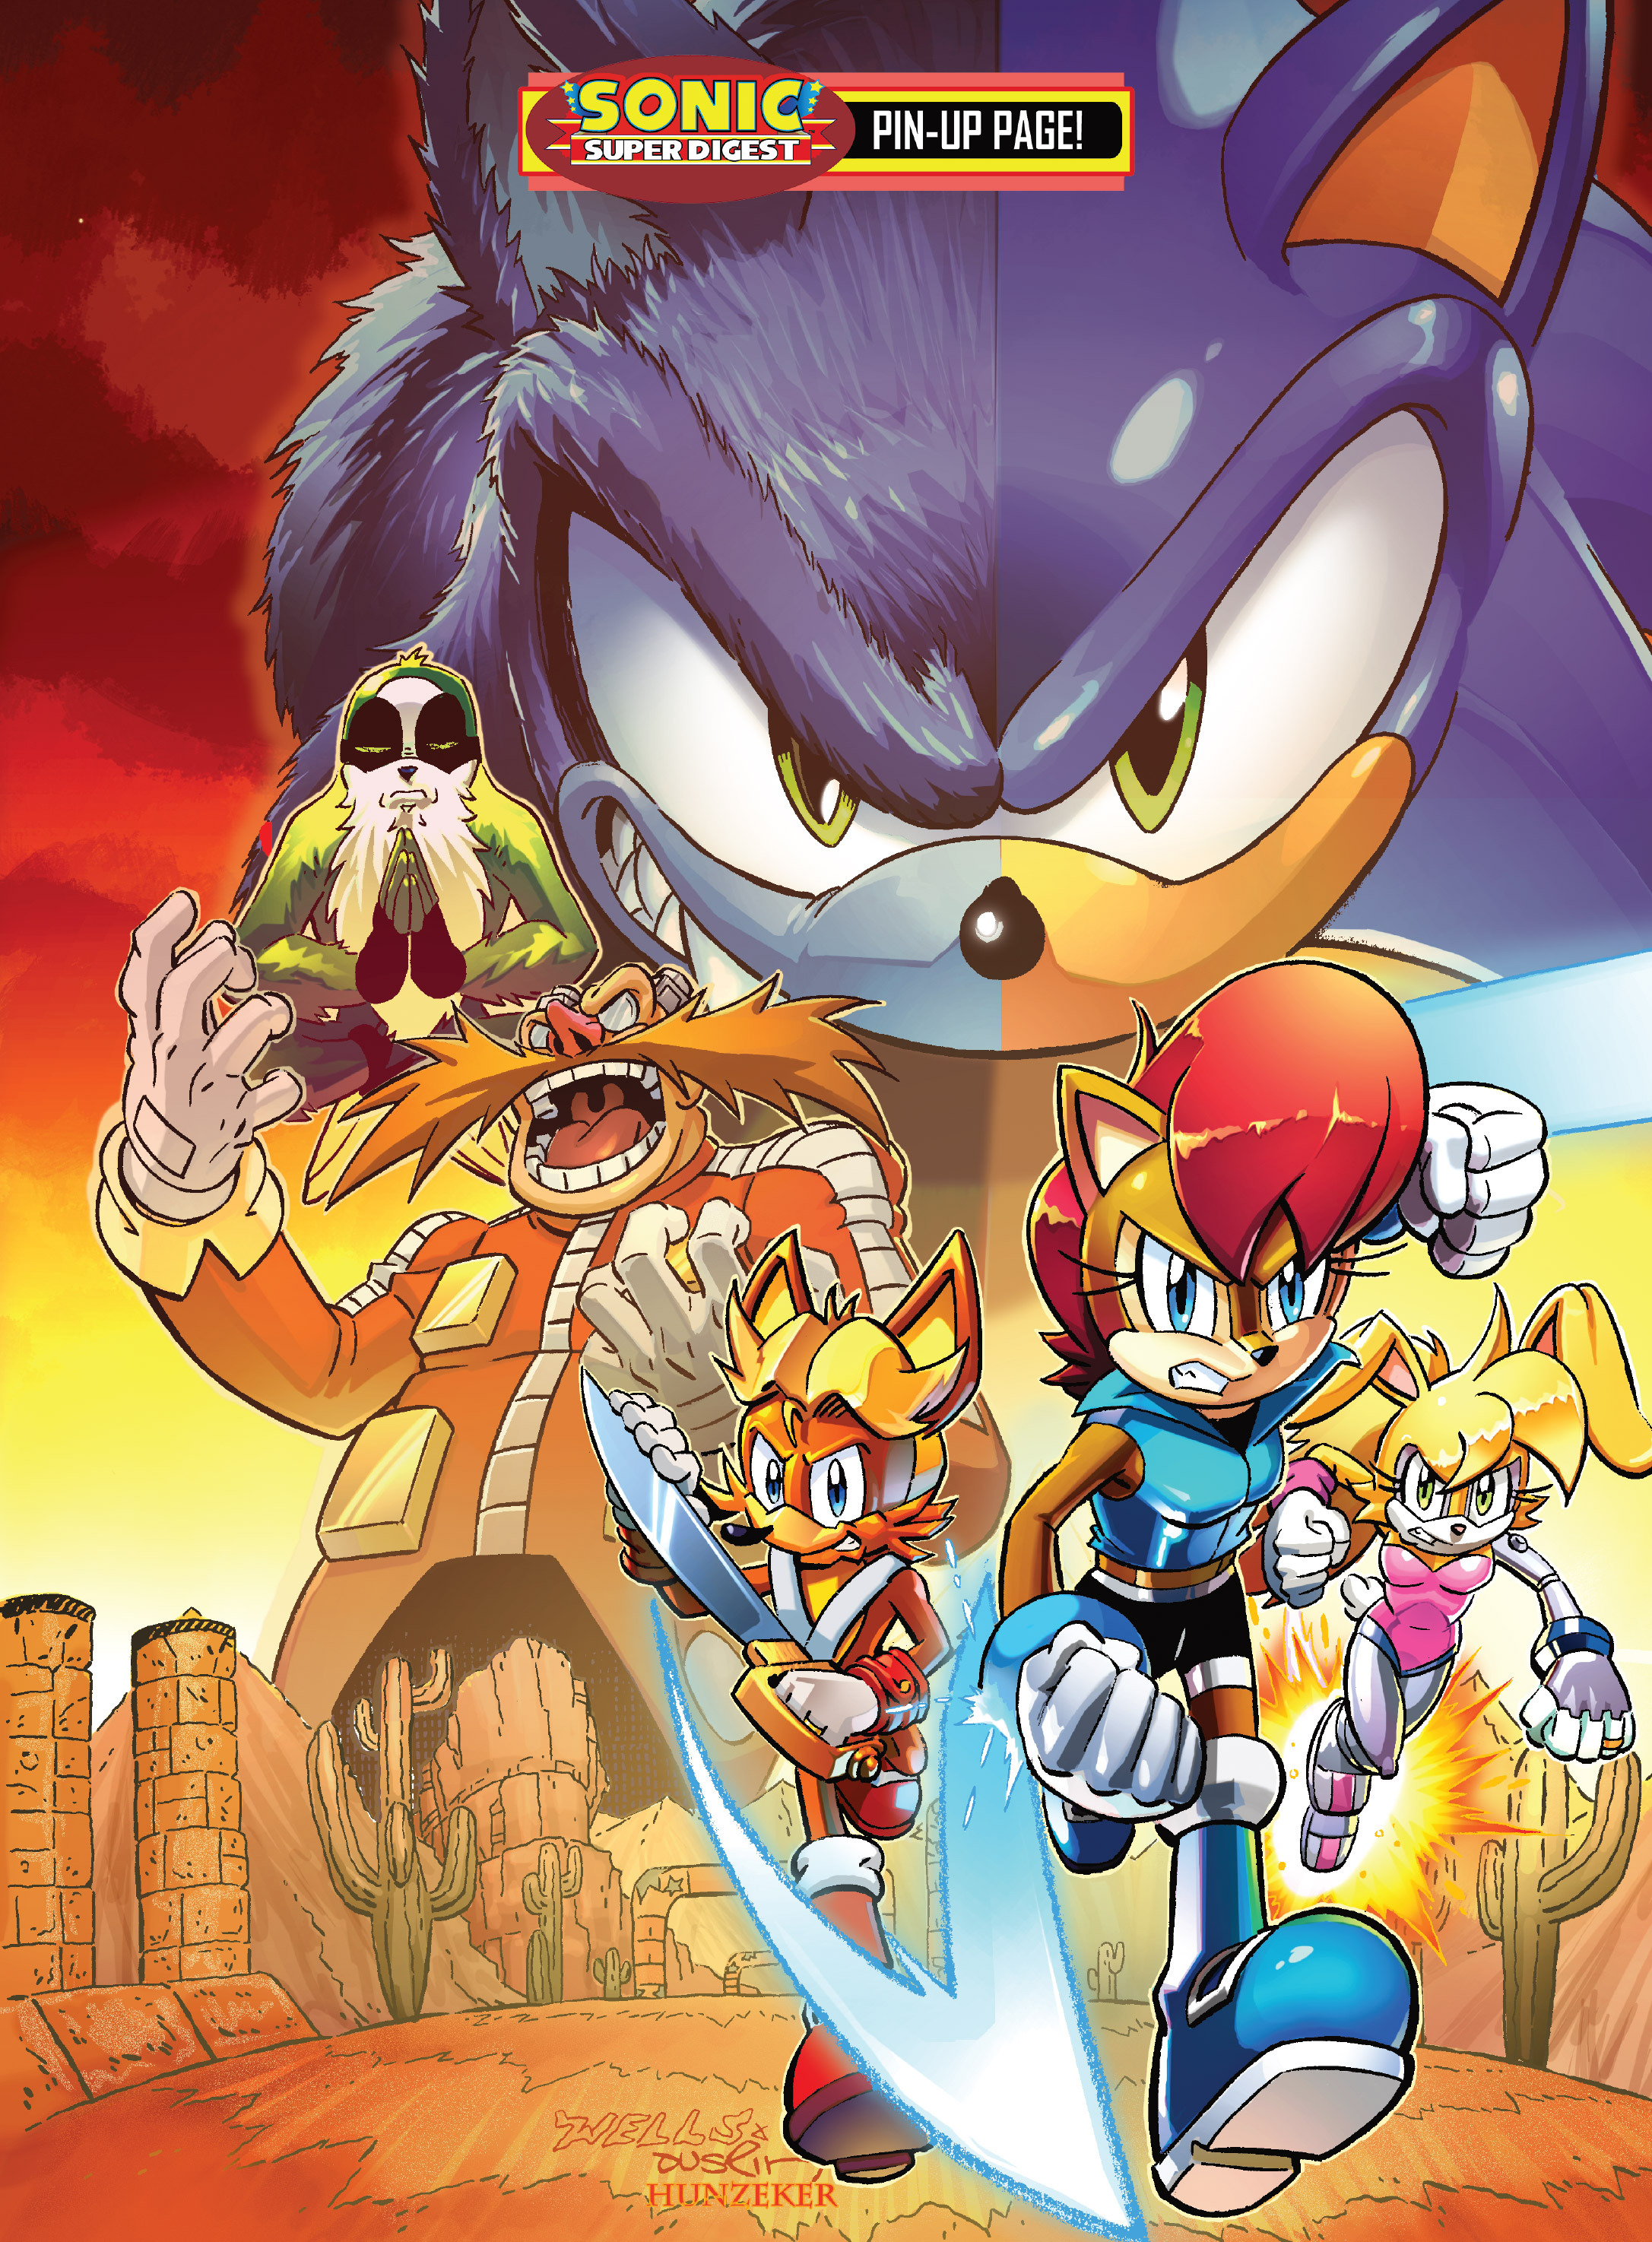 Read online Sonic Super Digest comic -  Issue #10 - 114